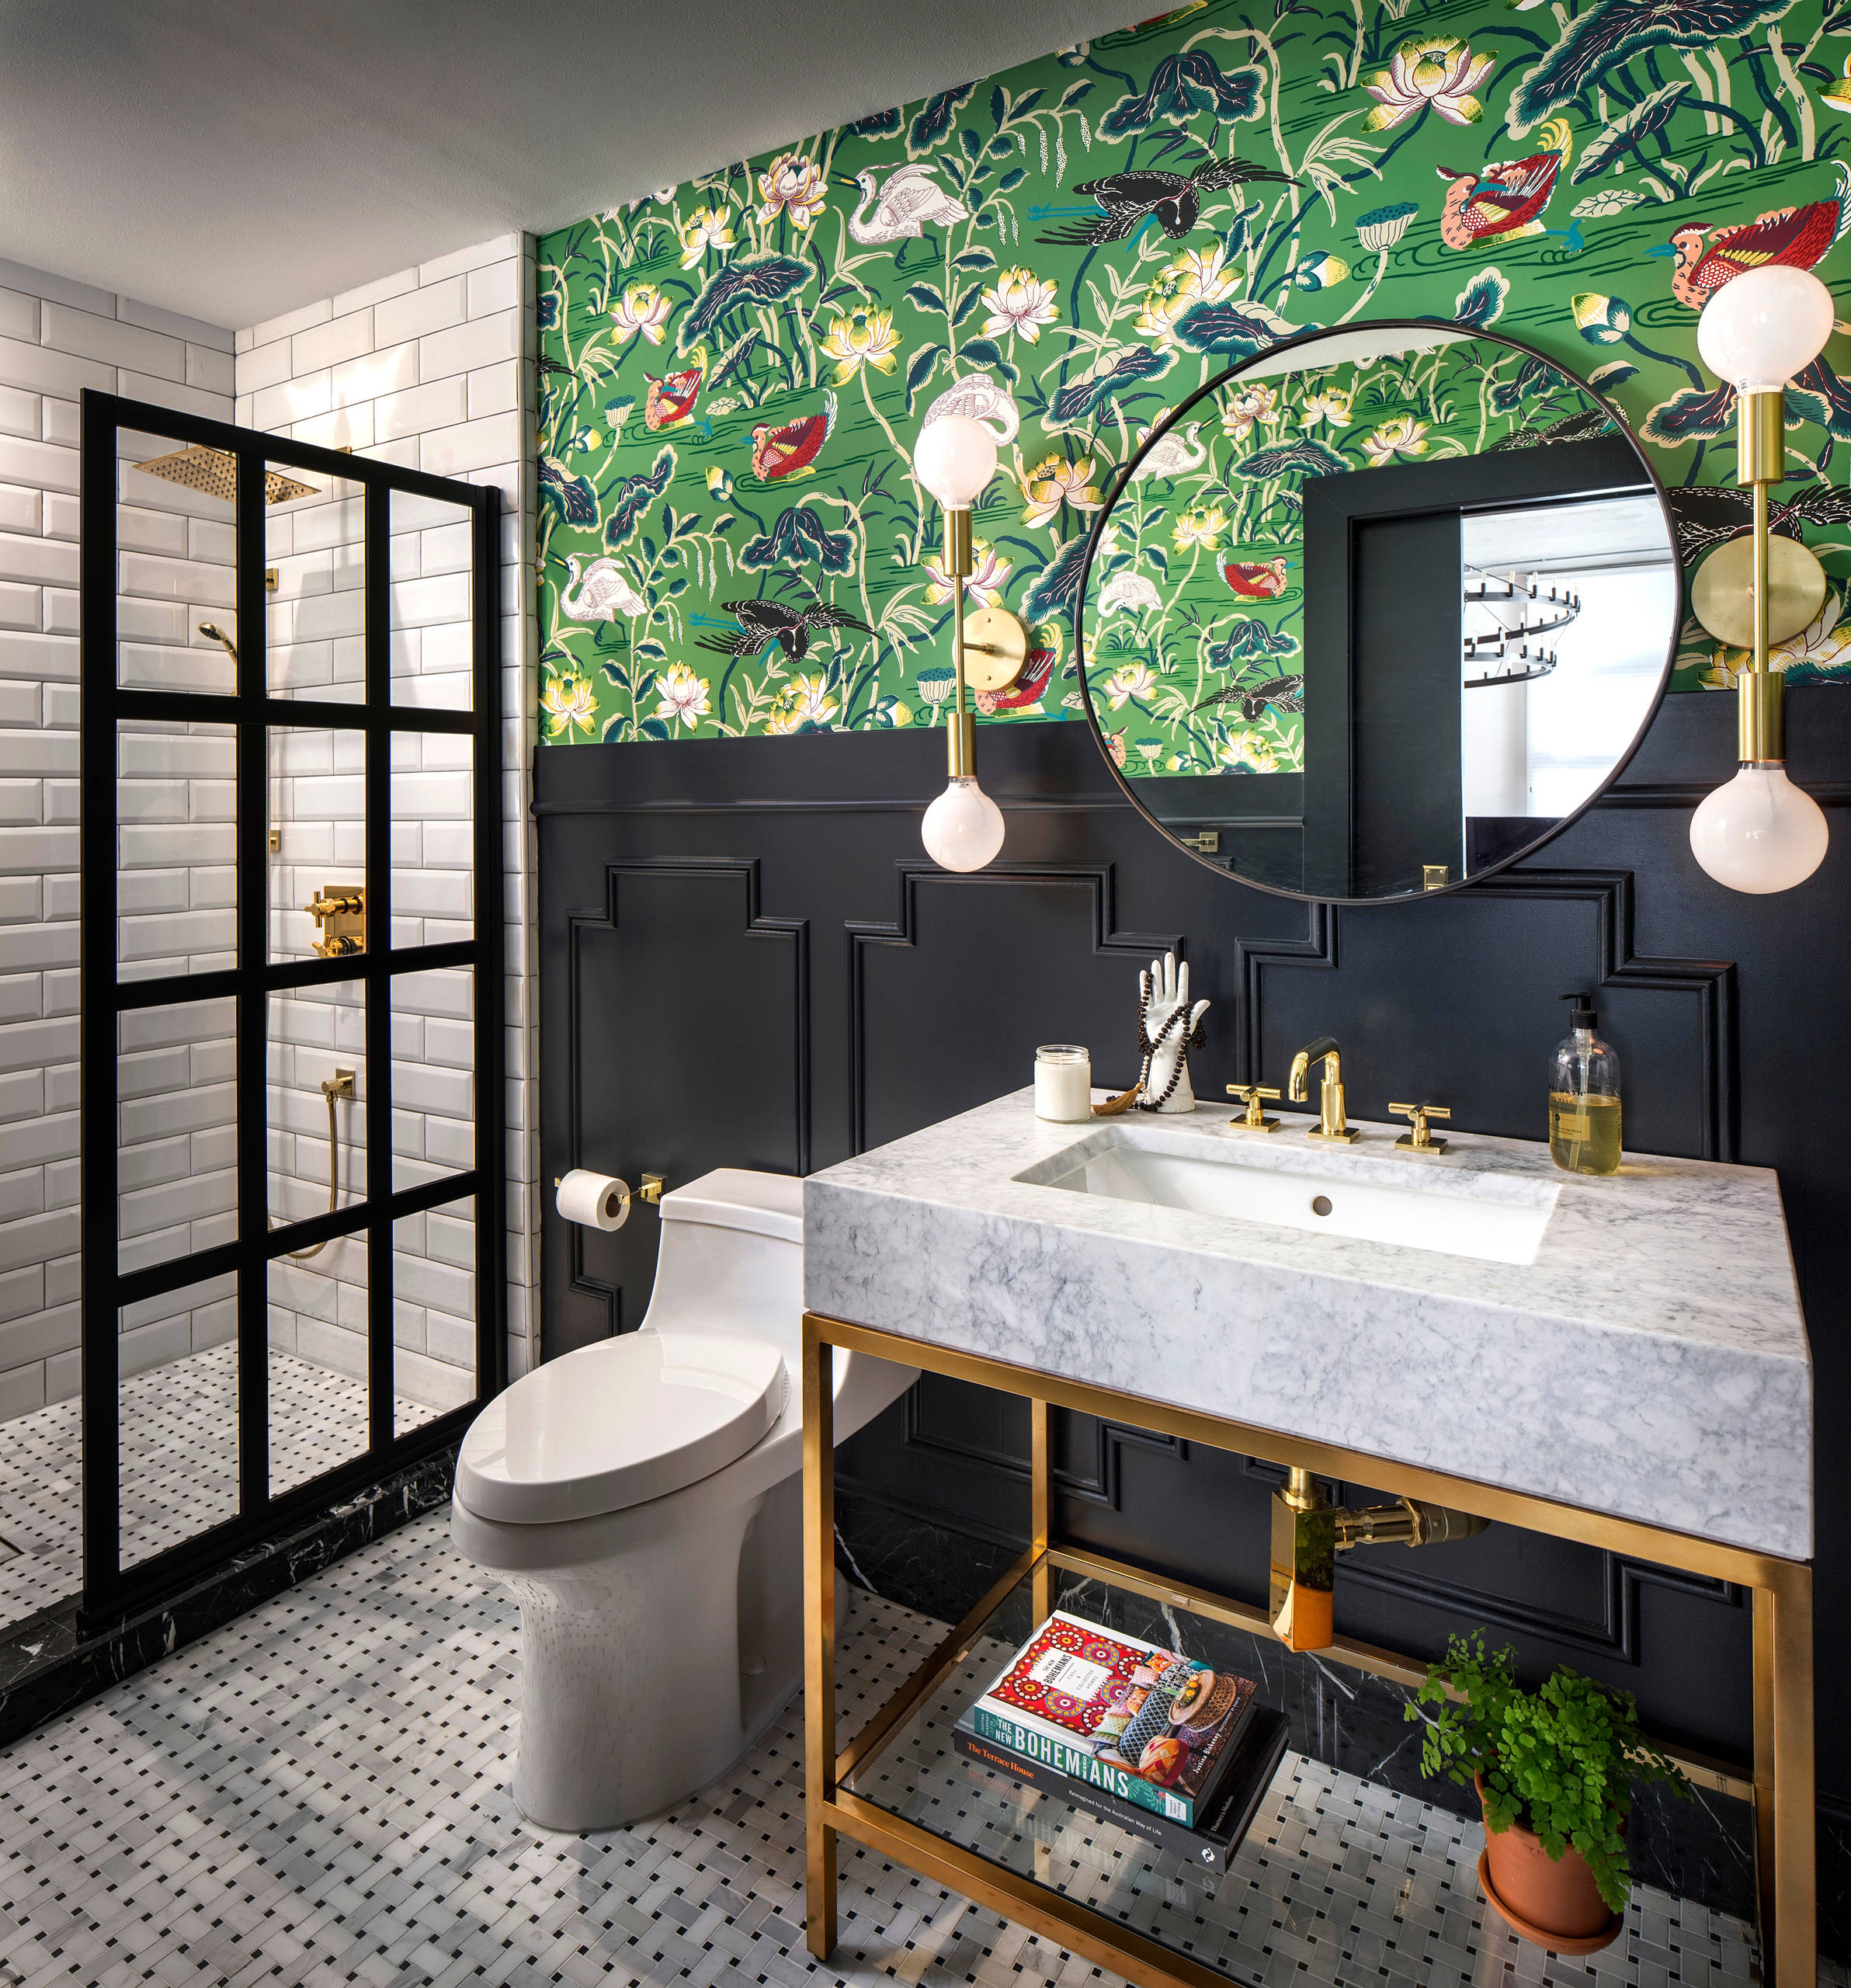 75 Beautiful Eclectic Bathroom Pictures Ideas April 2021 Houzz